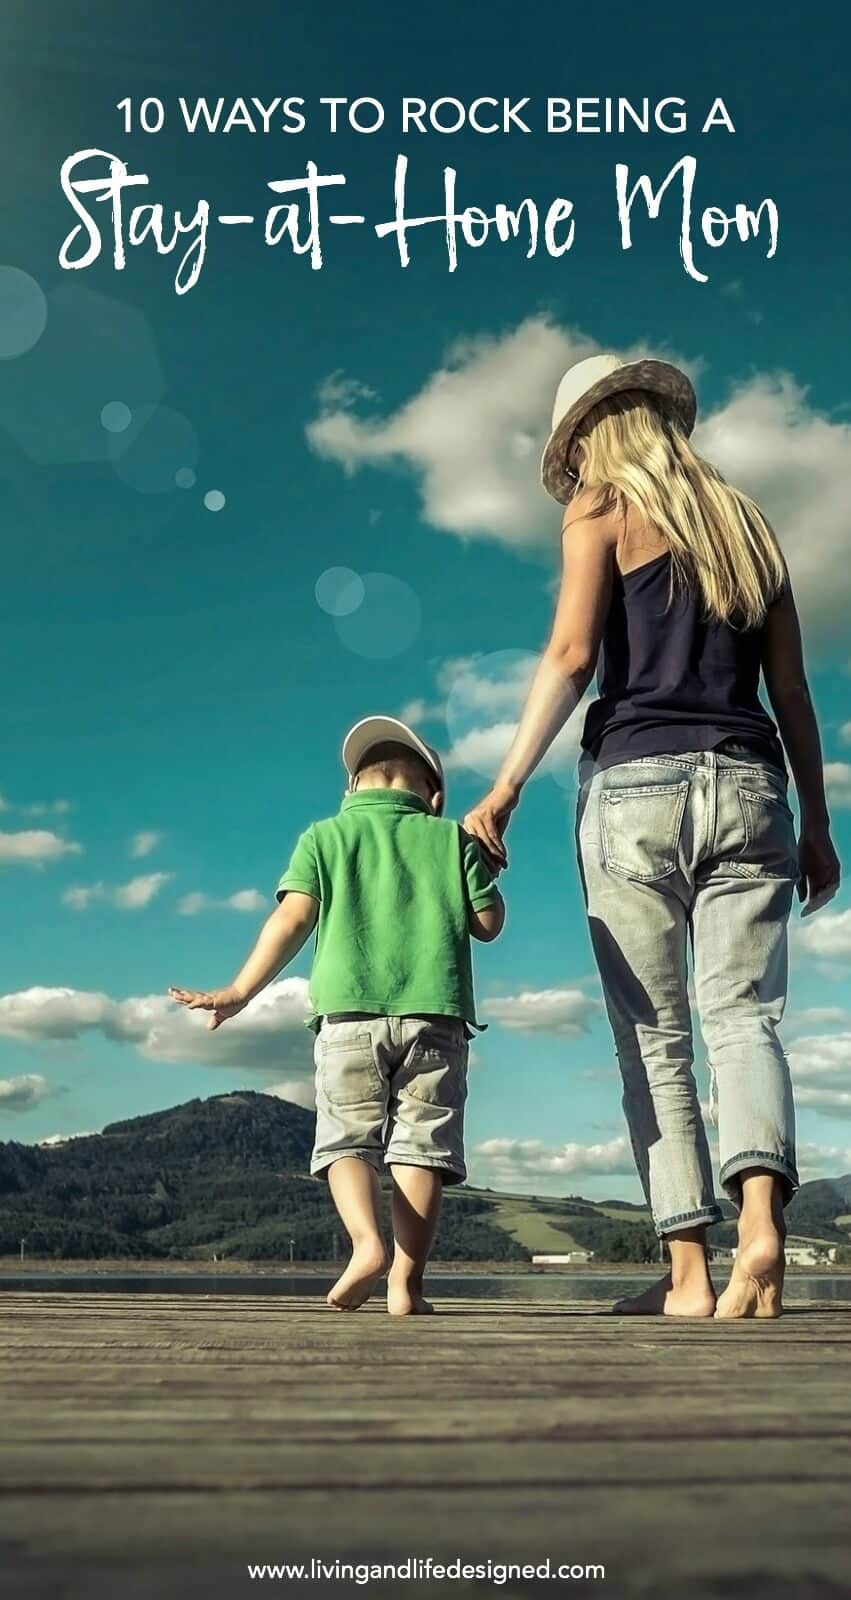 10 Ways to Rock Being a Stay at Home Mom